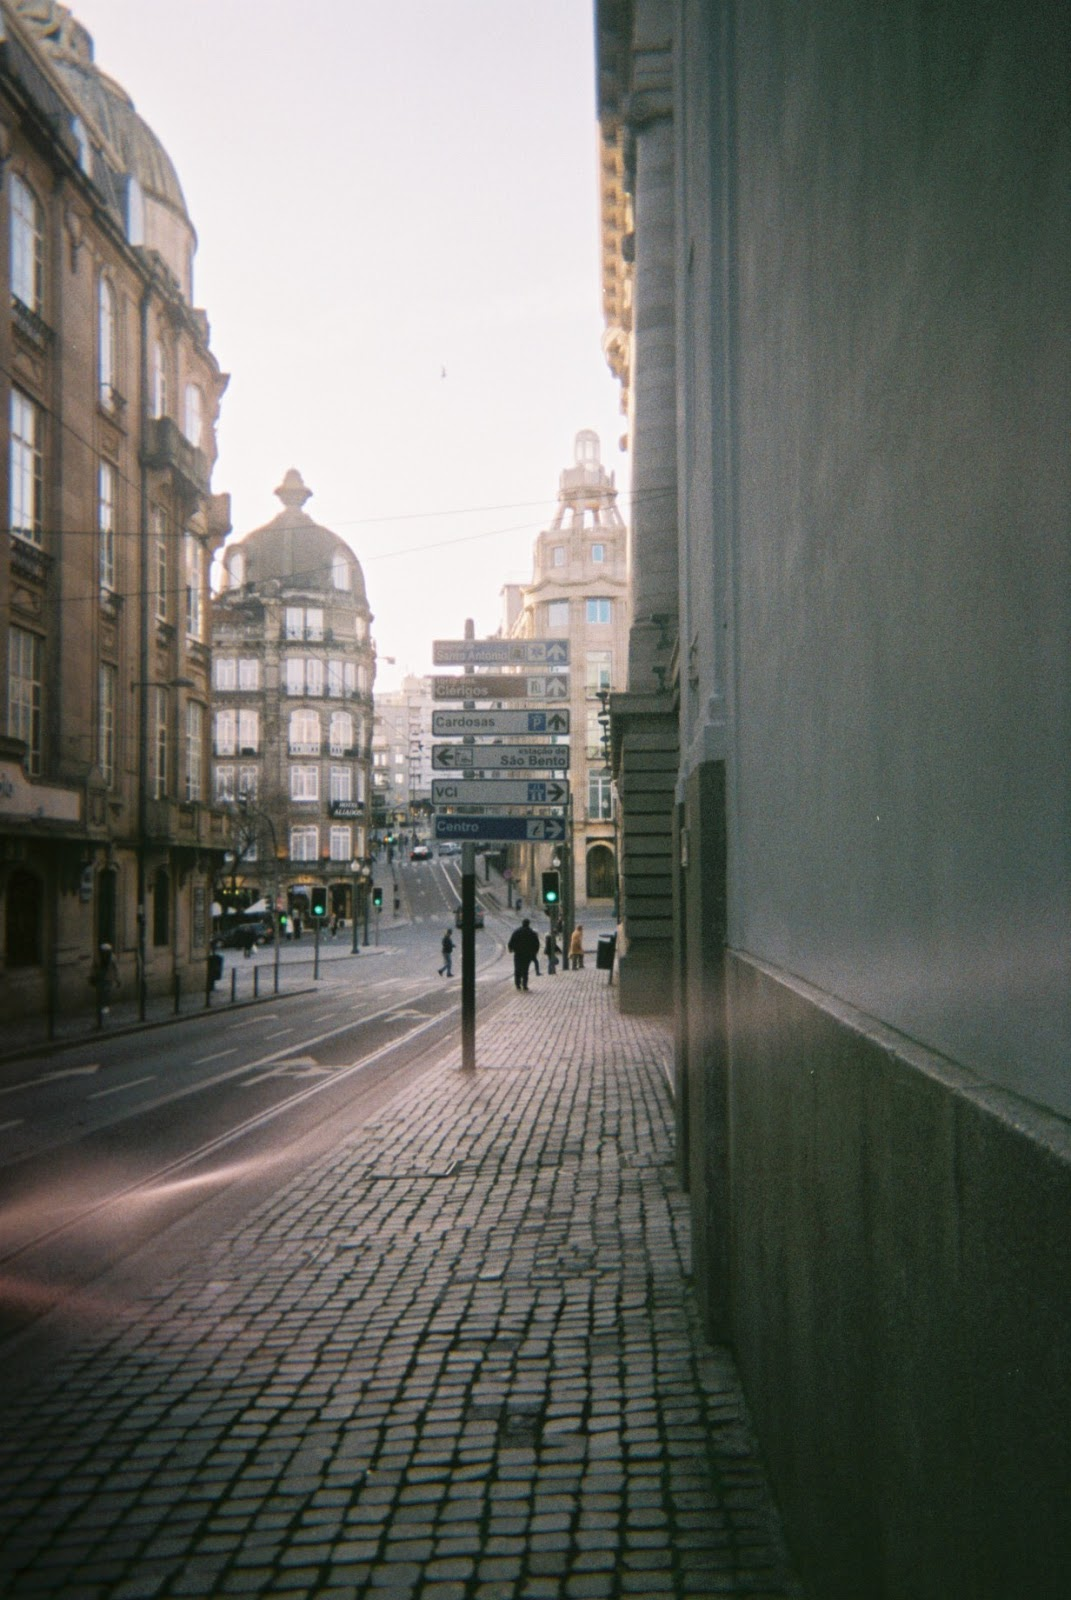 The Disposable Series #3